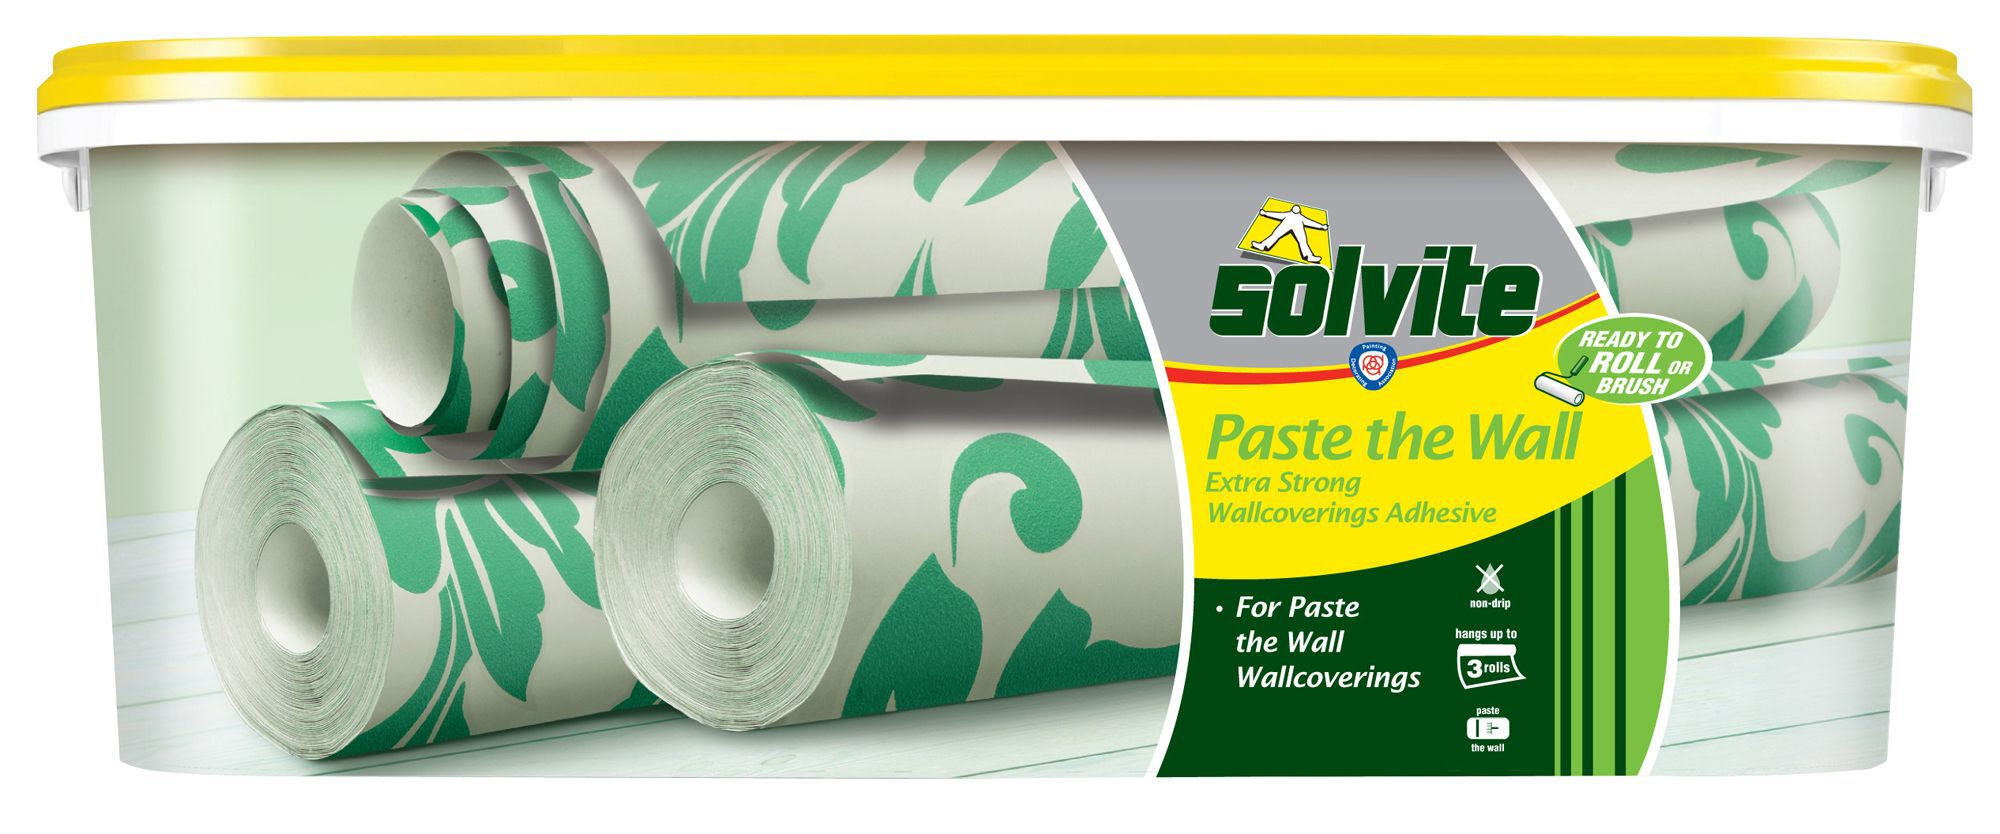 Solvite Paste The Wall Ready to Roll Wallpaper Adhesive 2.5kg | Departments | DIY at B&Q